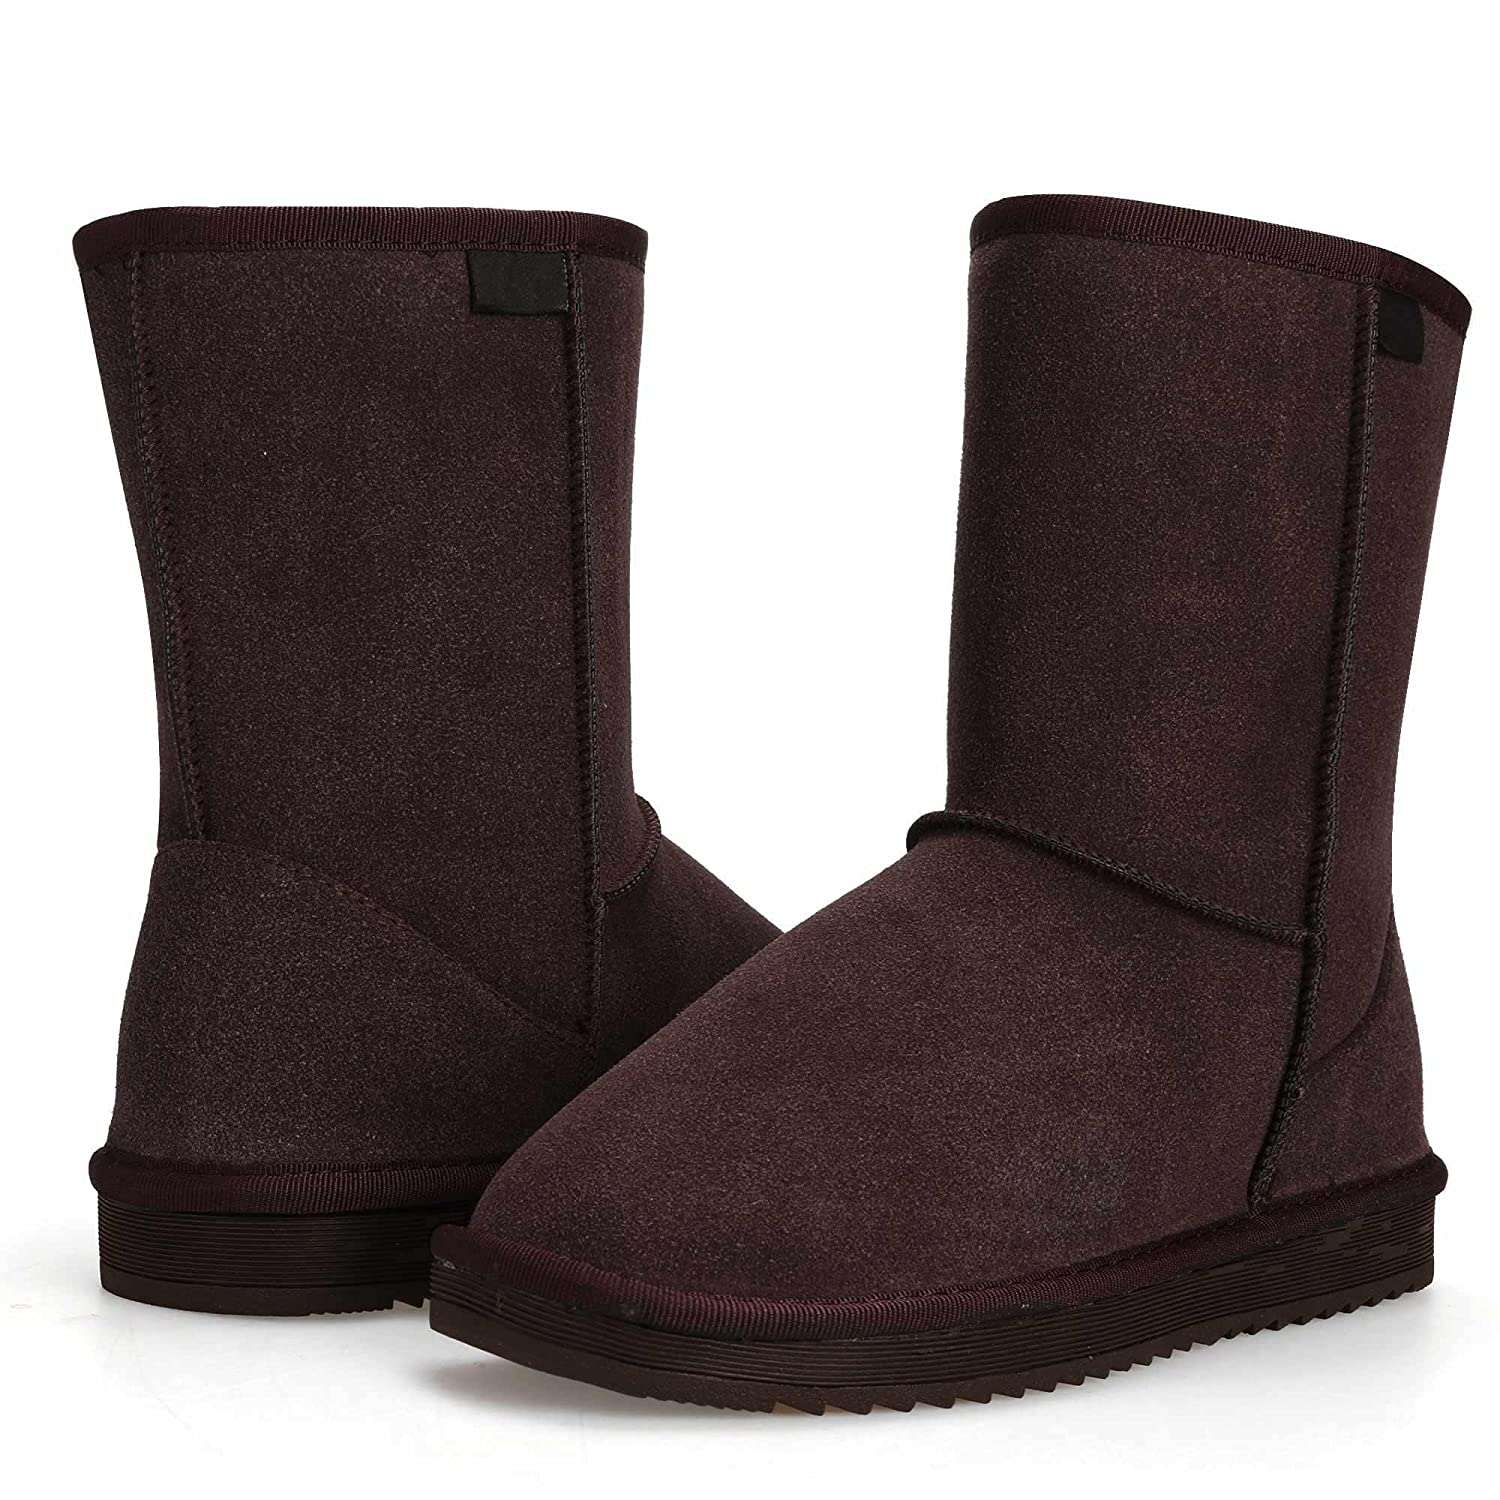 Dicesnow Fashion Women Flat Casual Winter Warm Faux Fur Snow Ankle Boots Shoes